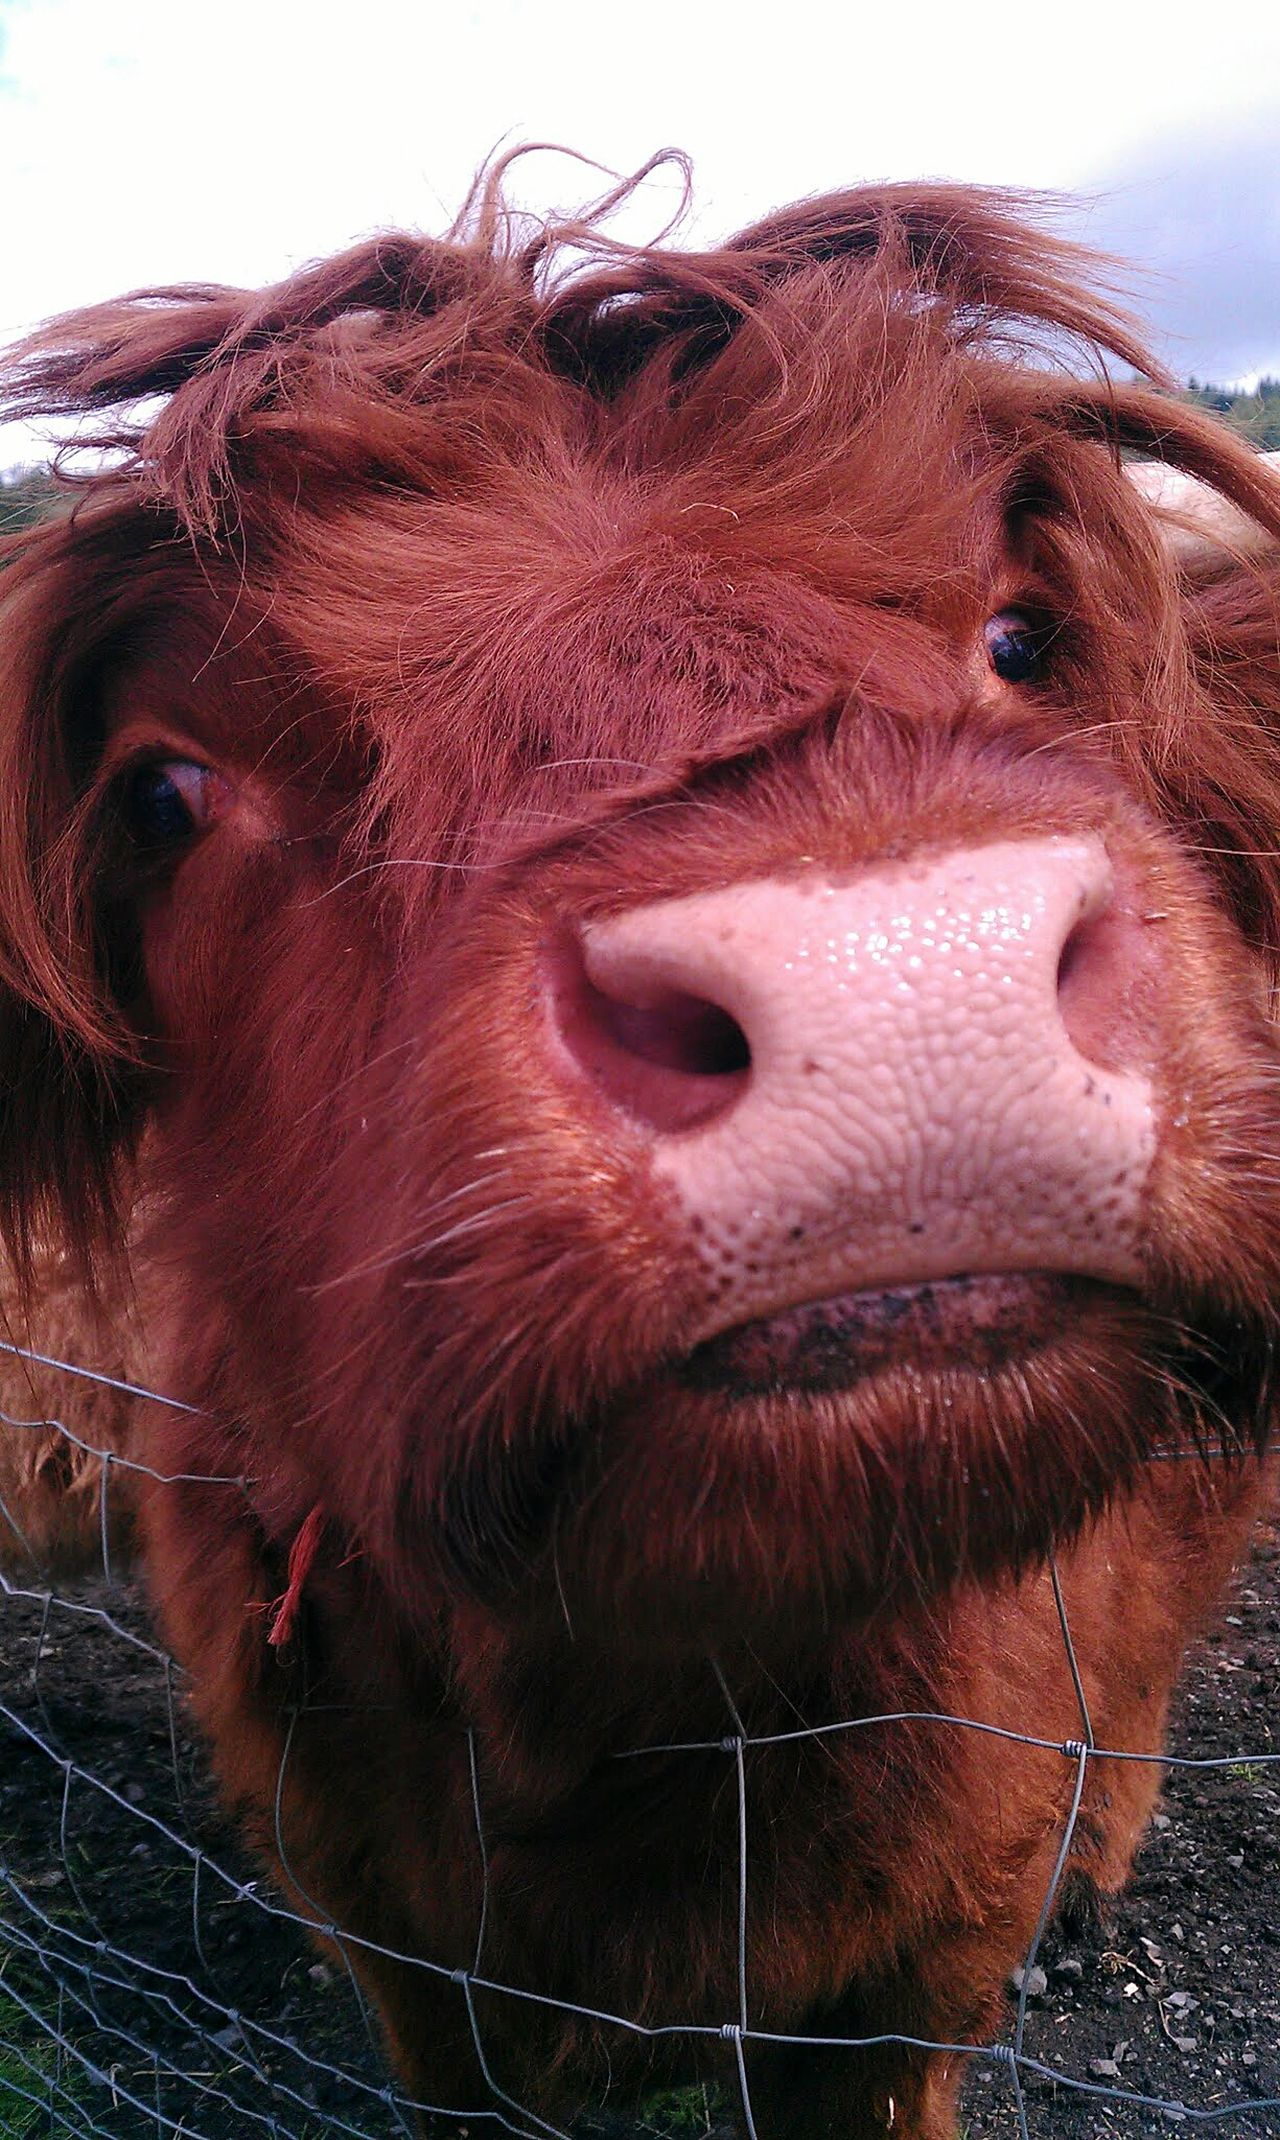 A hairy coo Animal Themes Outdoors Day No People Close-up A Surprise Visitor Hairy Scotland Scottish